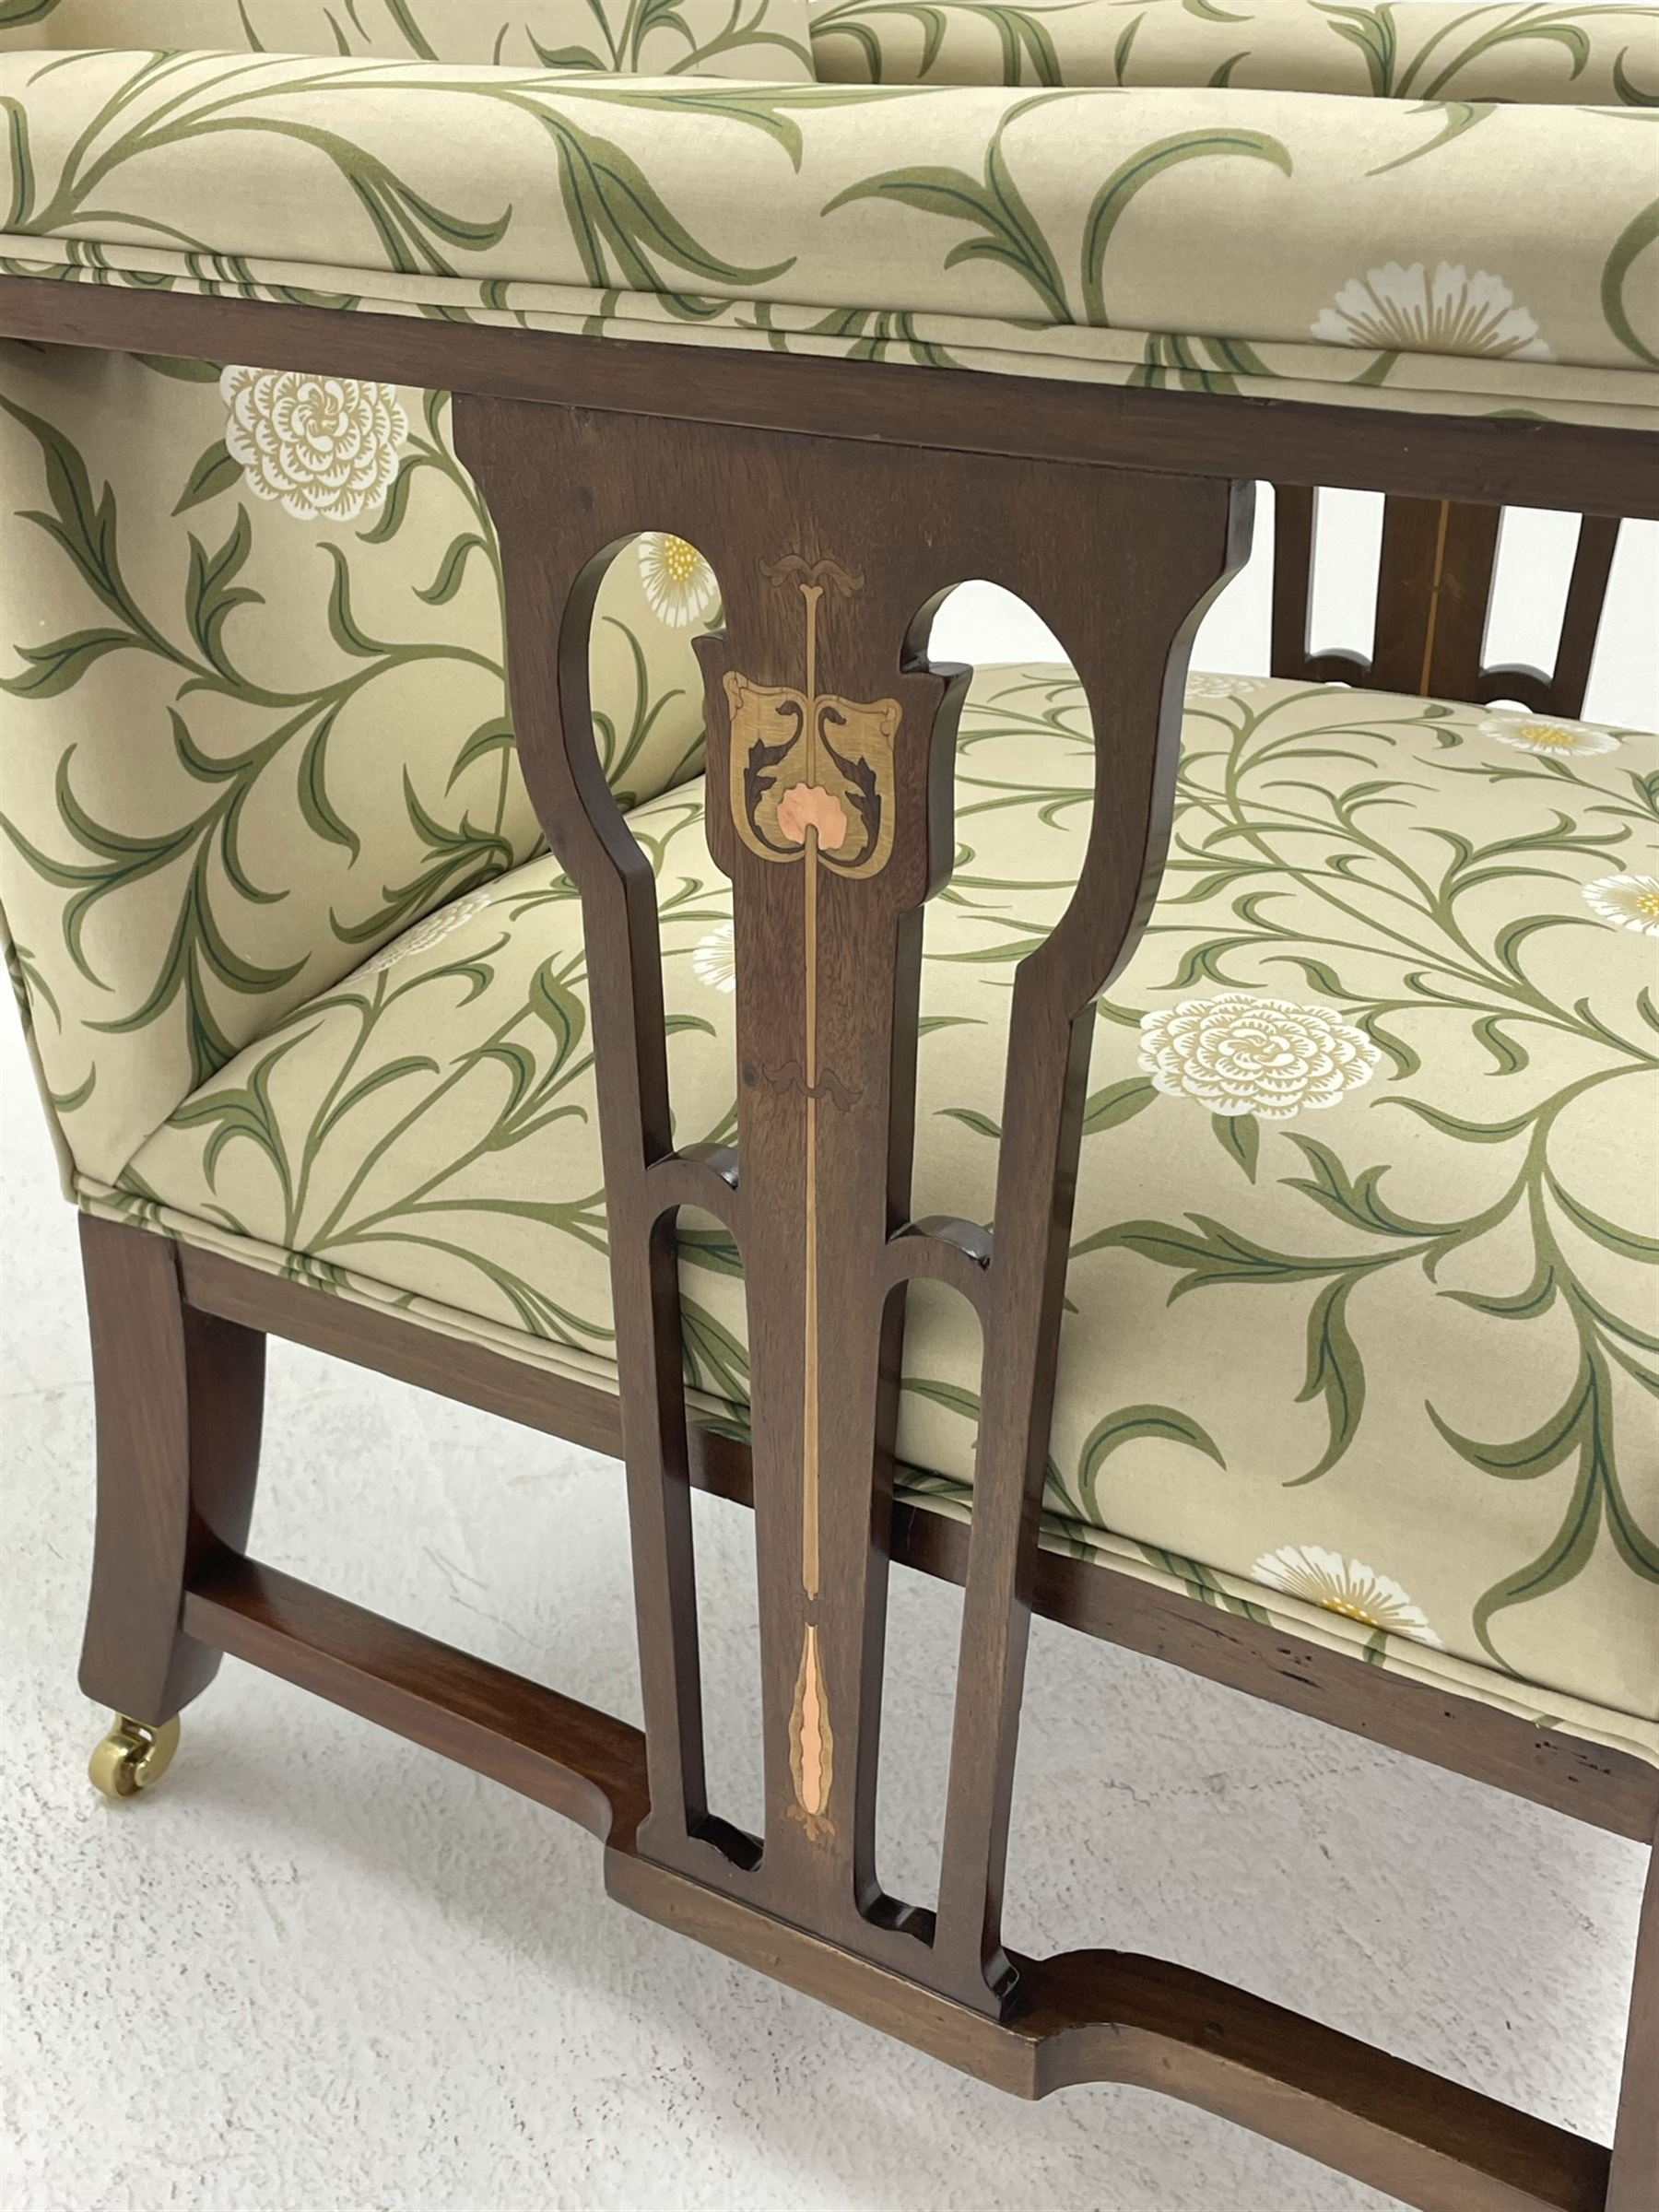 Late 19th century Arts and Crafts mahogany armchair - Image 5 of 7